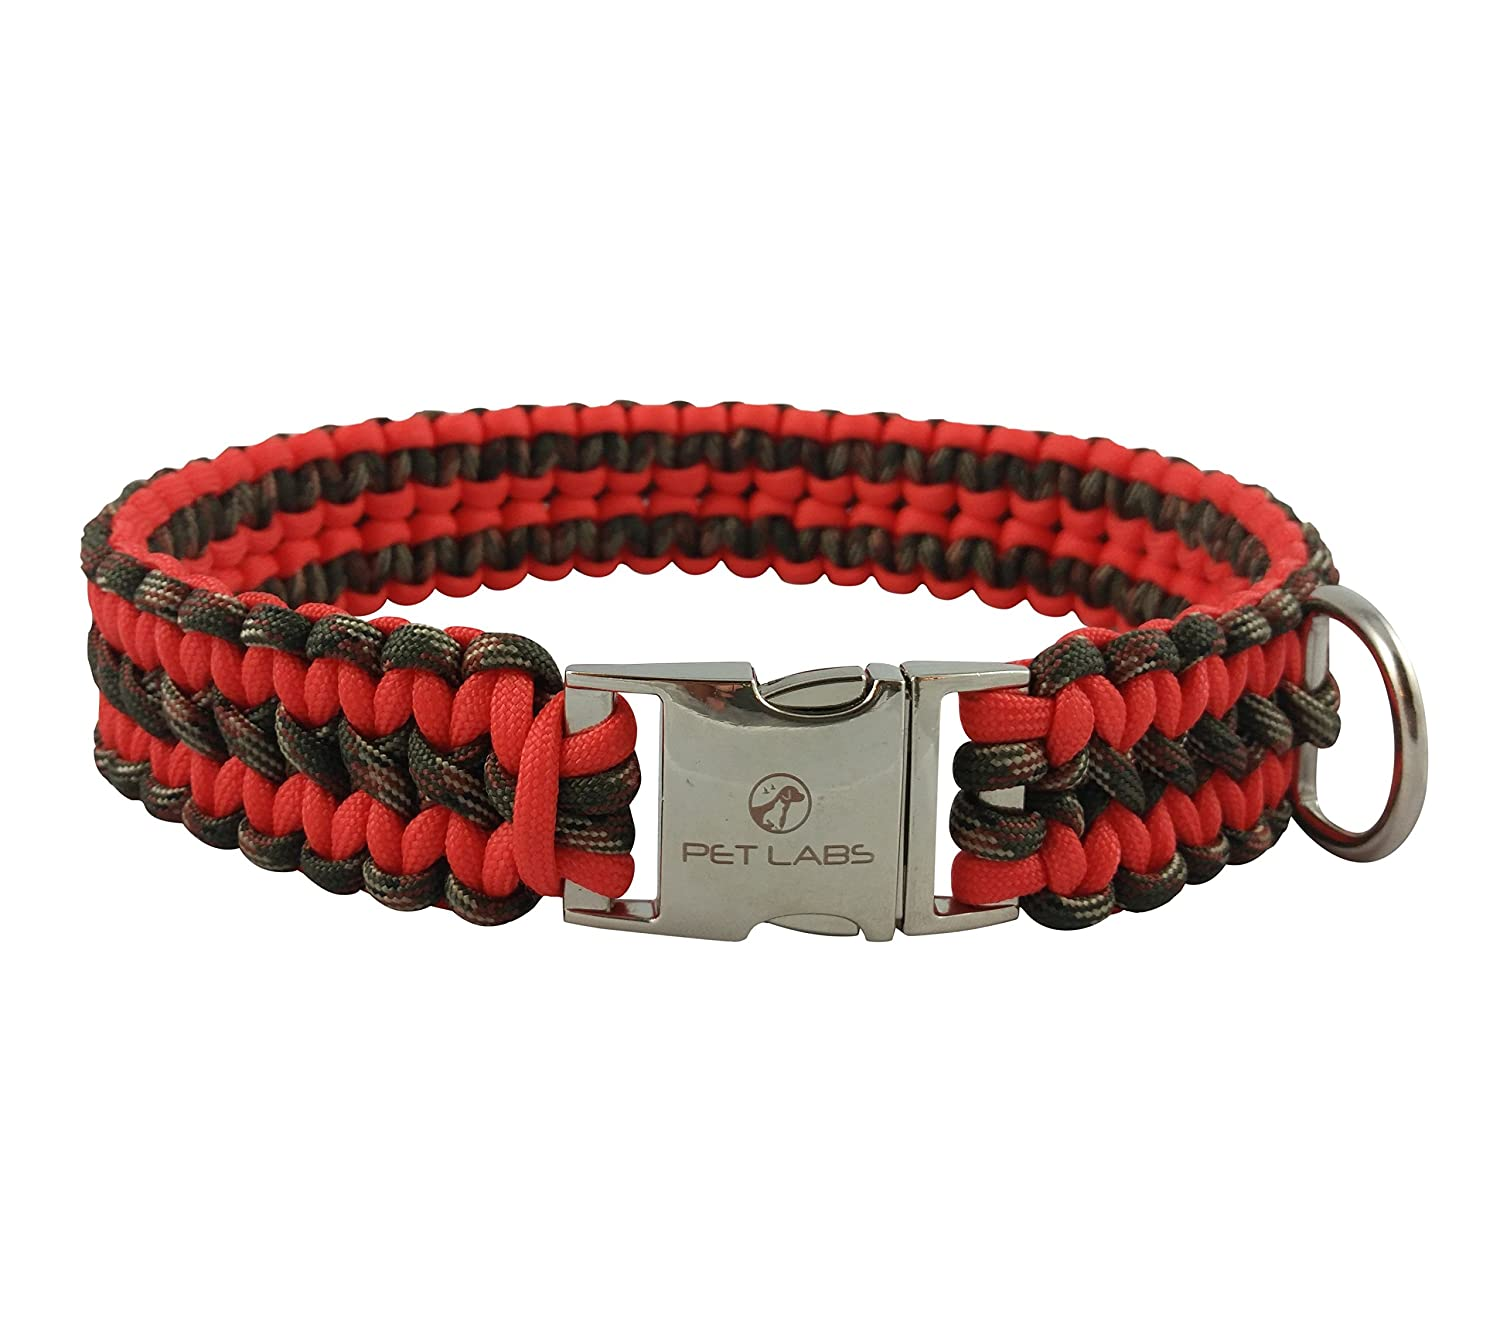 16.14in   41cm Pet Labs Paracord Dog Collar orange-Red and Army Green Camo with Buckle (16.14in   41cm)